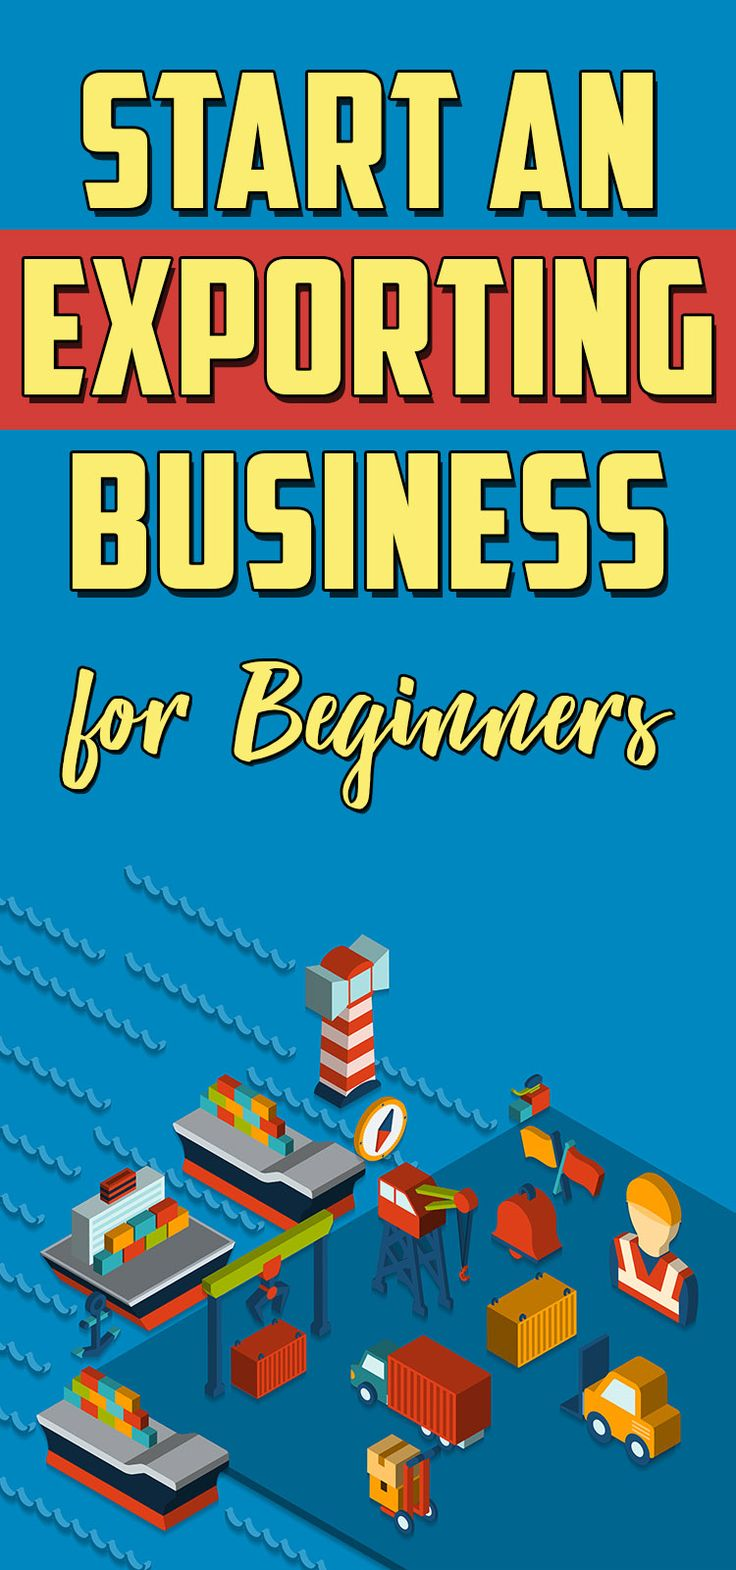 How to start an Exporting Business for Beginners Learn